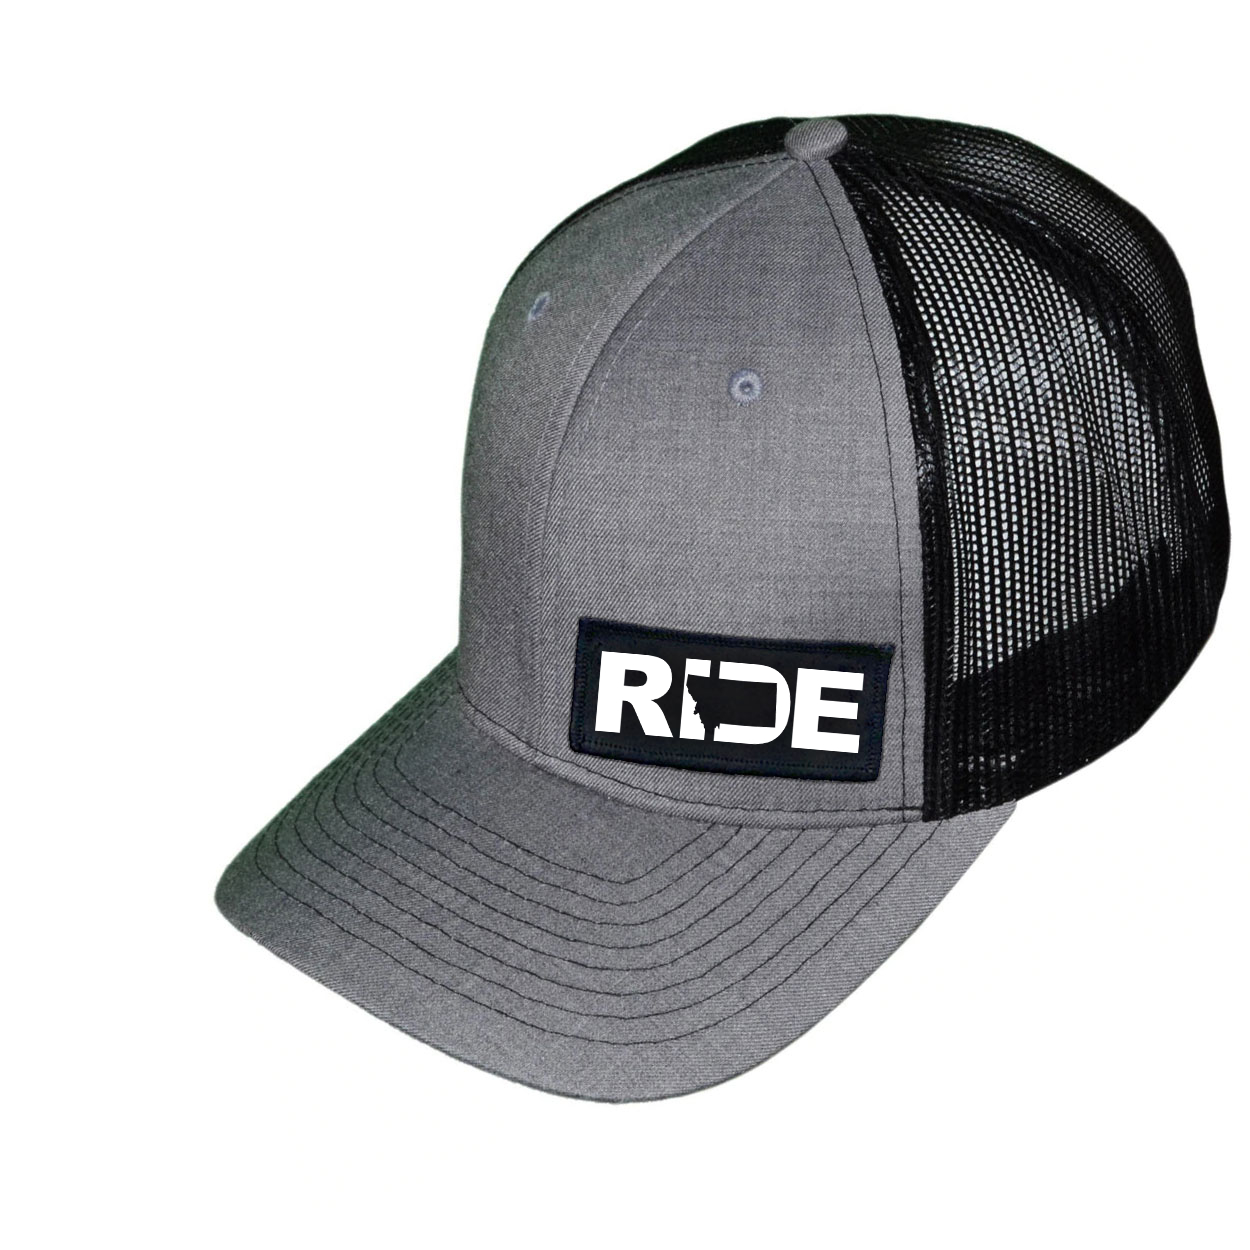 Ride Montana Night Out Woven Patch Snapback Trucker Hat Heather Gray/Black (White Logo)